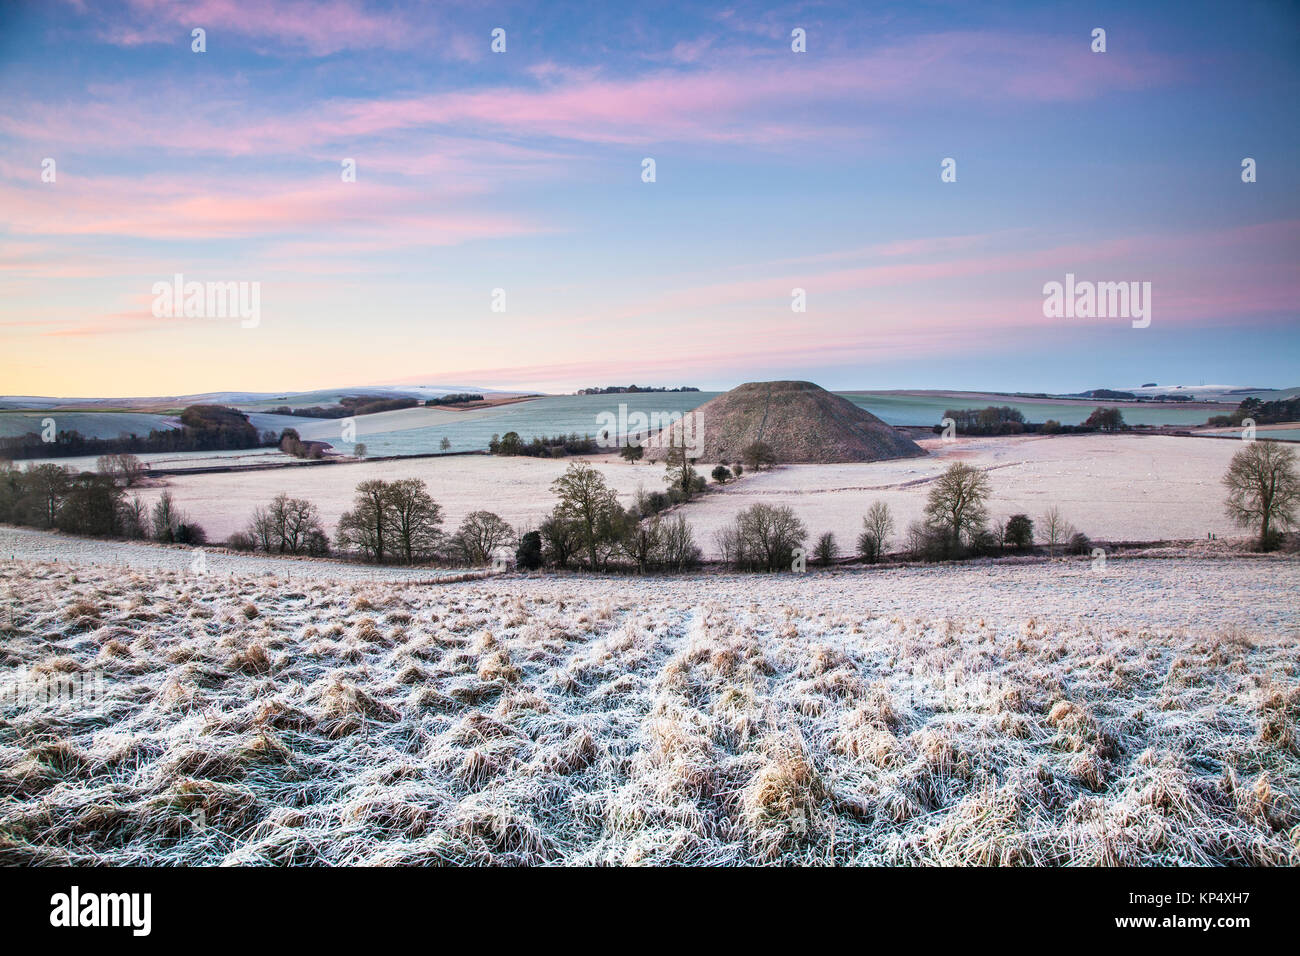 A frosty morning at Silbury Hill in Wiltshire. Stock Photo